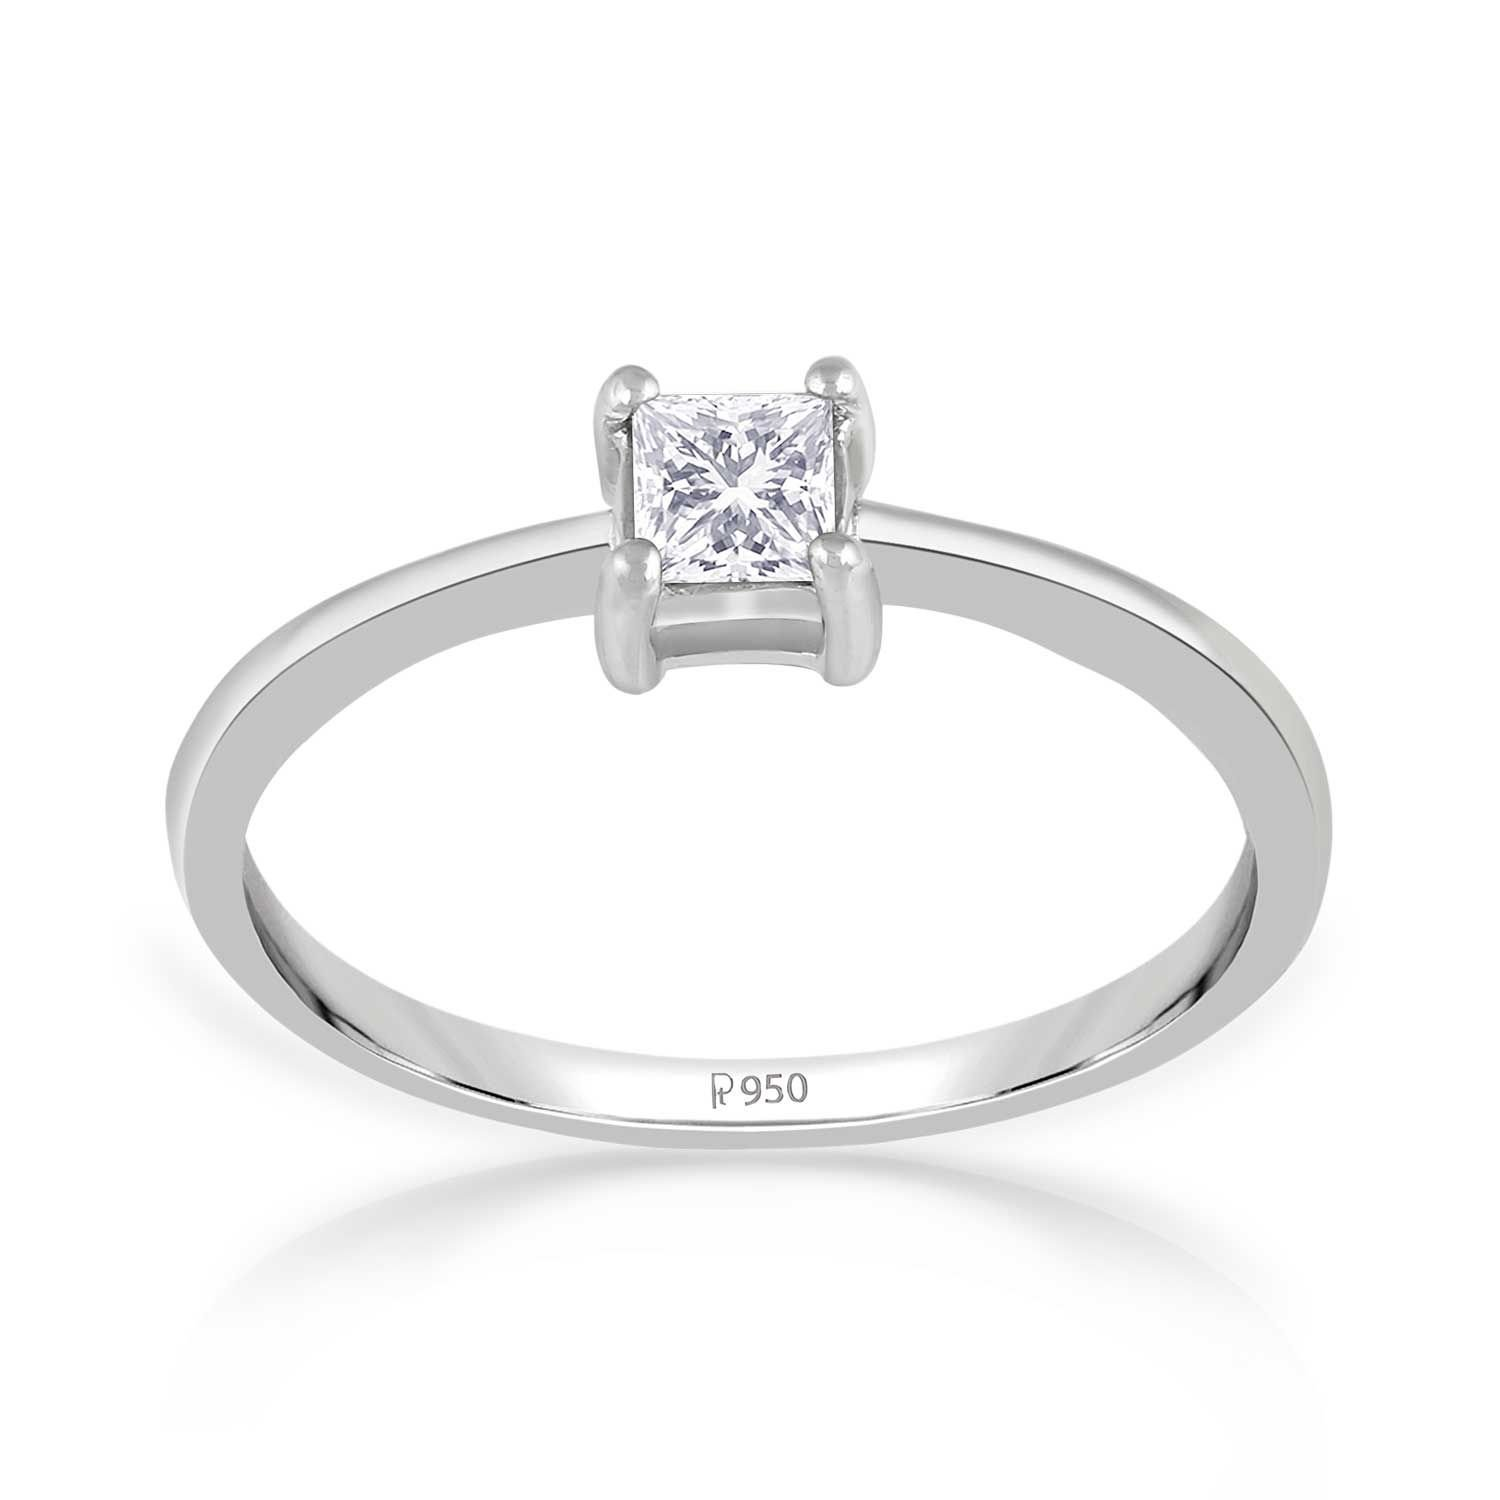 5898c7e262279 Buy Malabar Gold and Diamonds 950 Platinum Ring for Women Online at ...